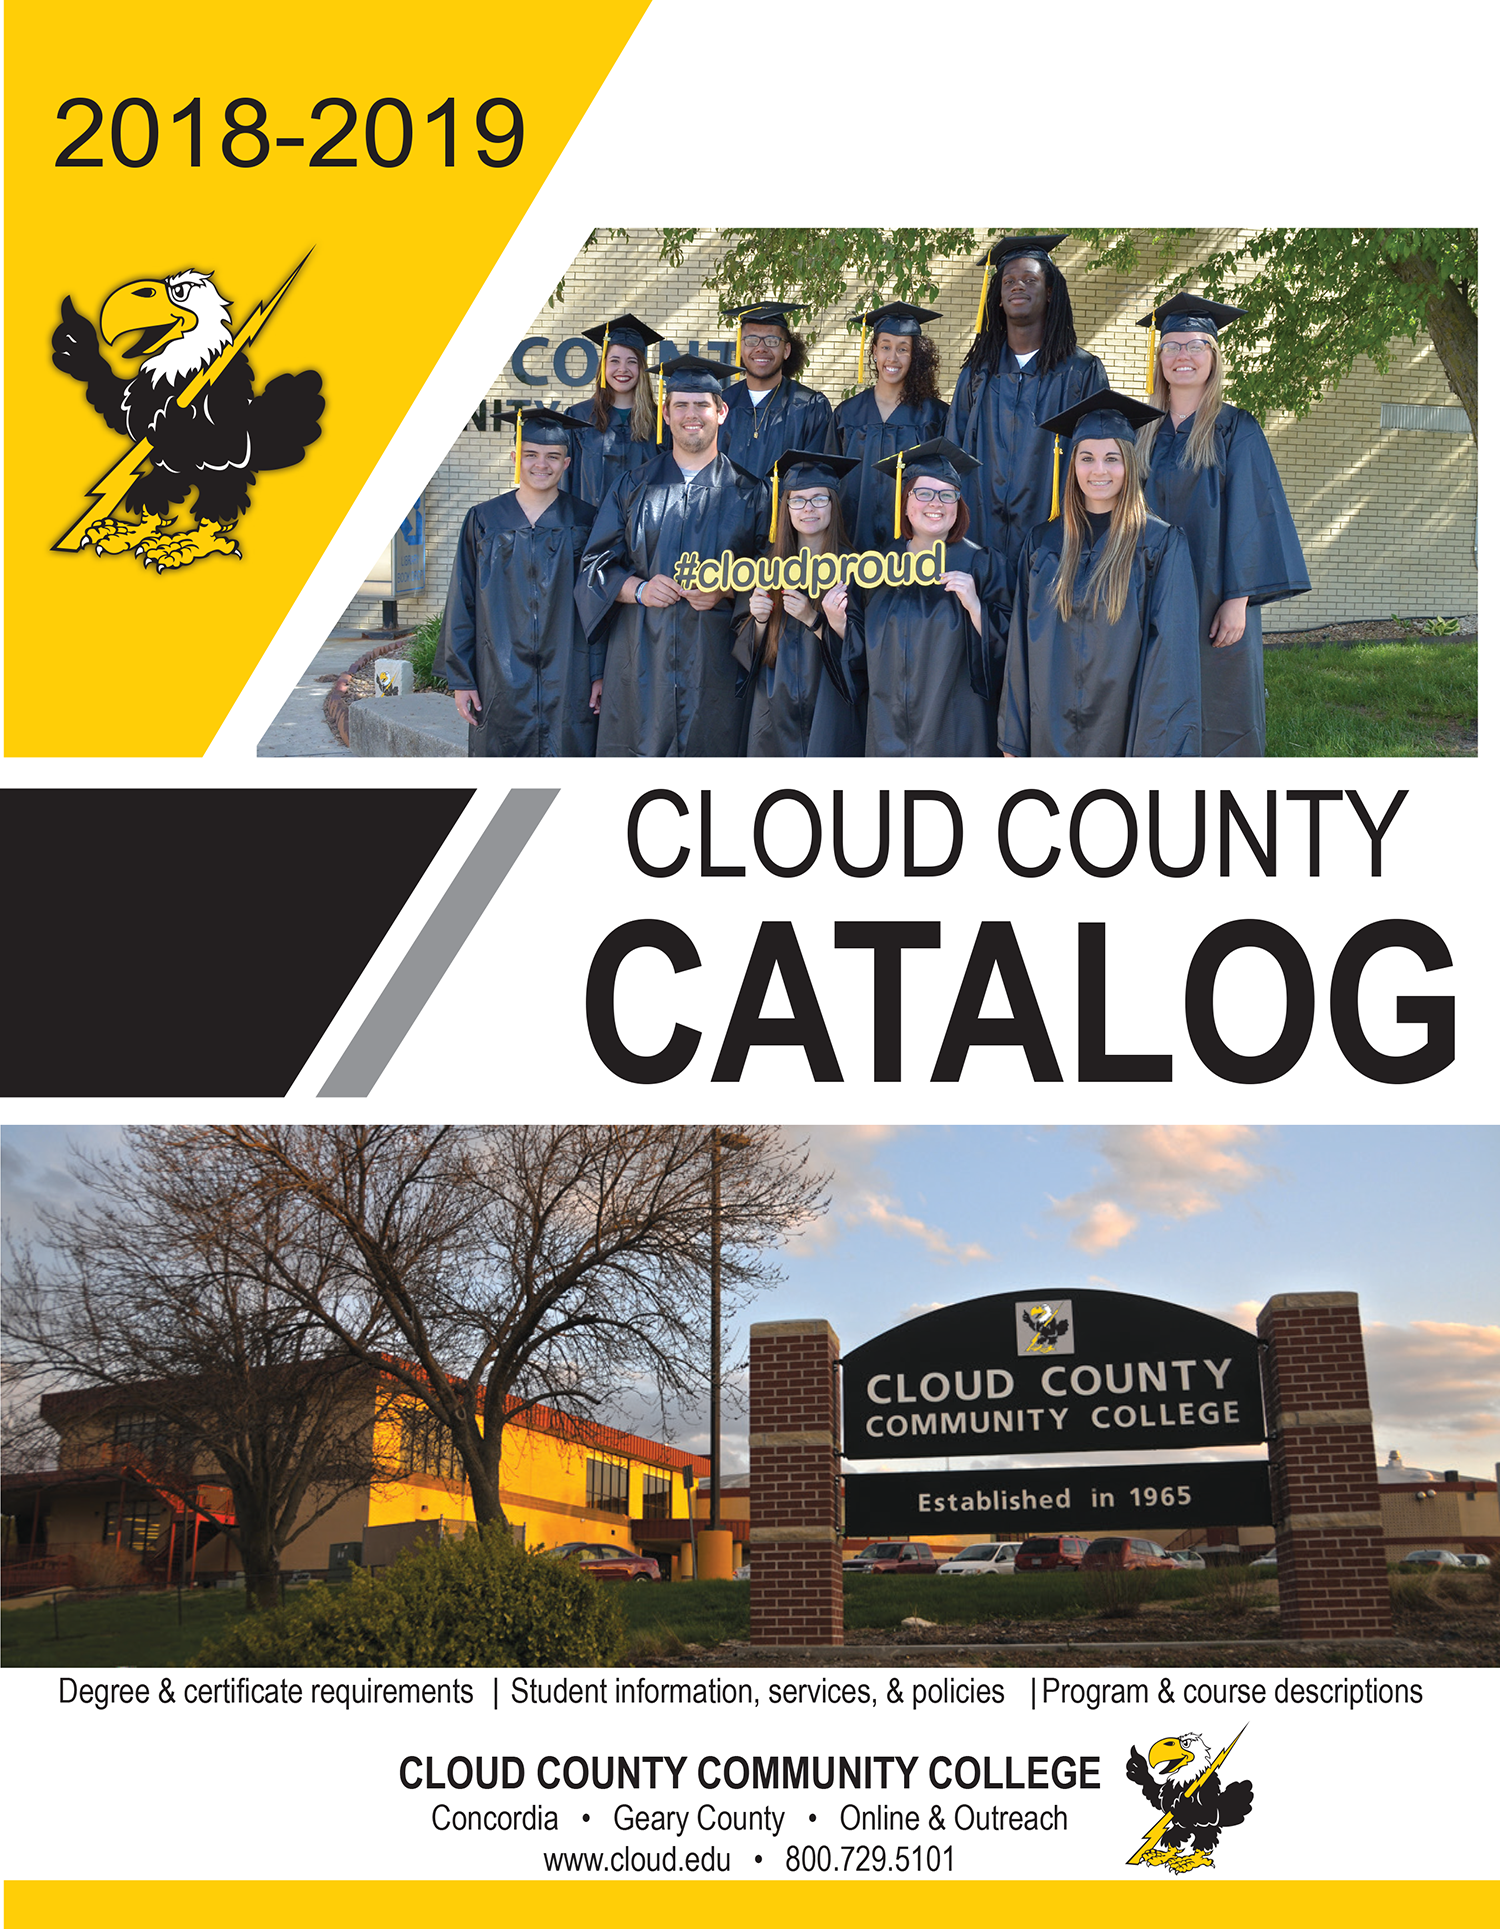 Click here for a PDF of the 2018-2019 Academic Catalog